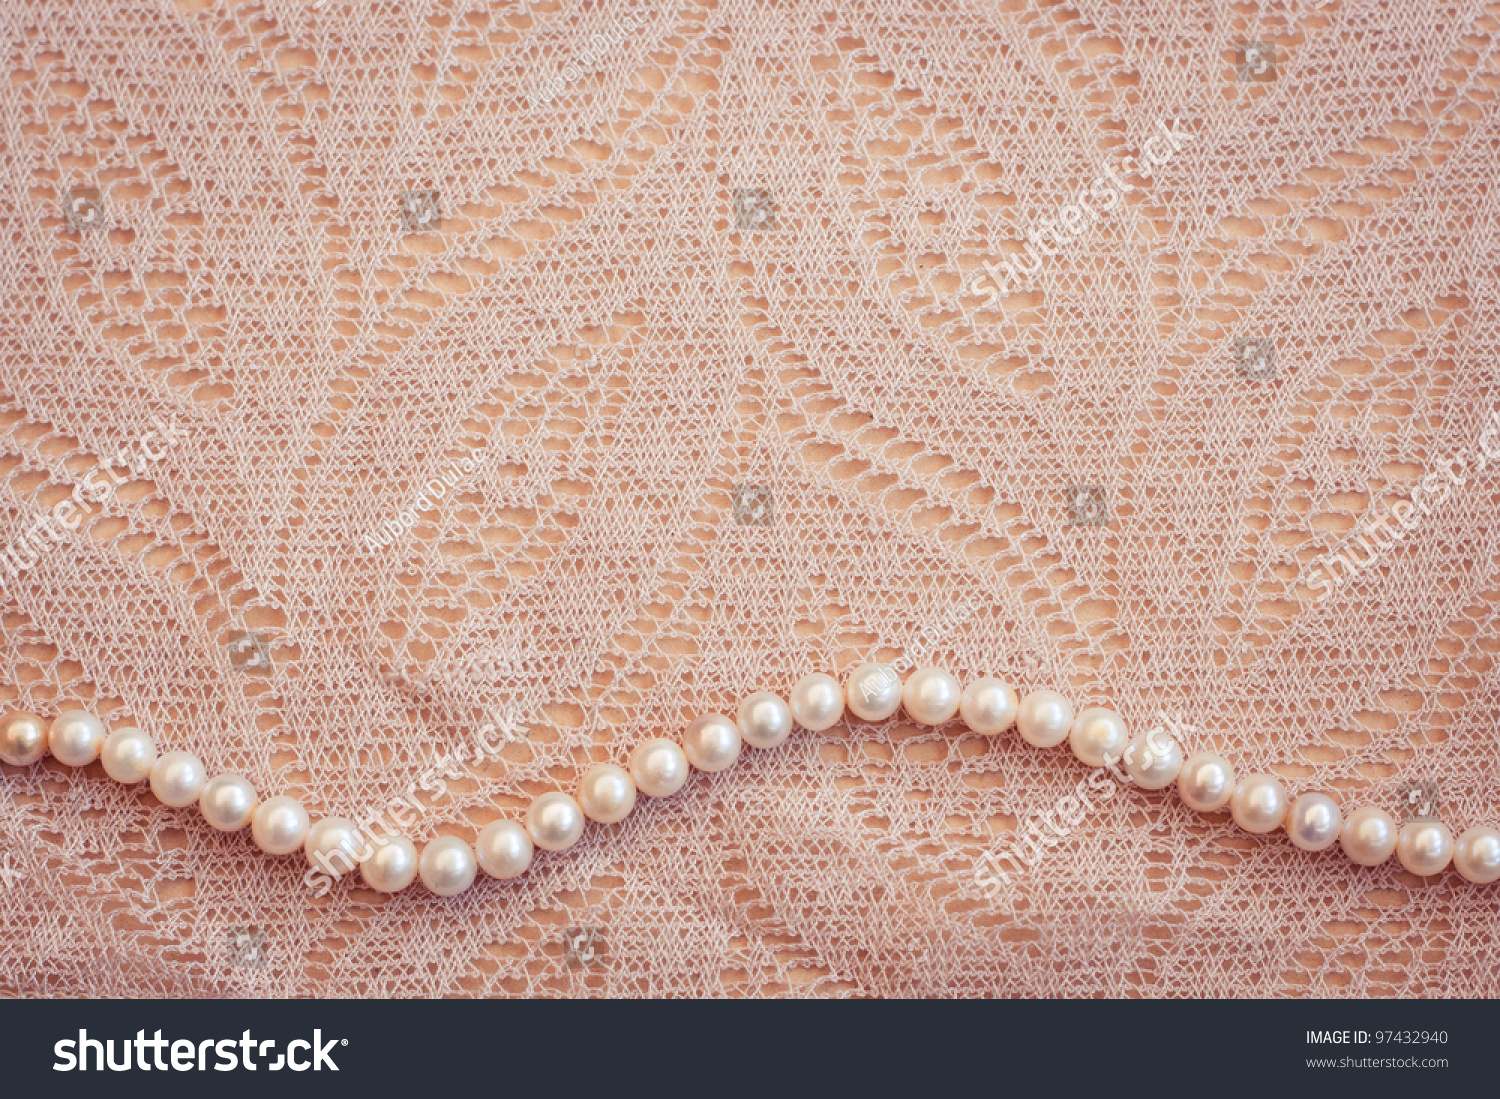 Related Keywords & Suggestions for lace and pearls backgrounds